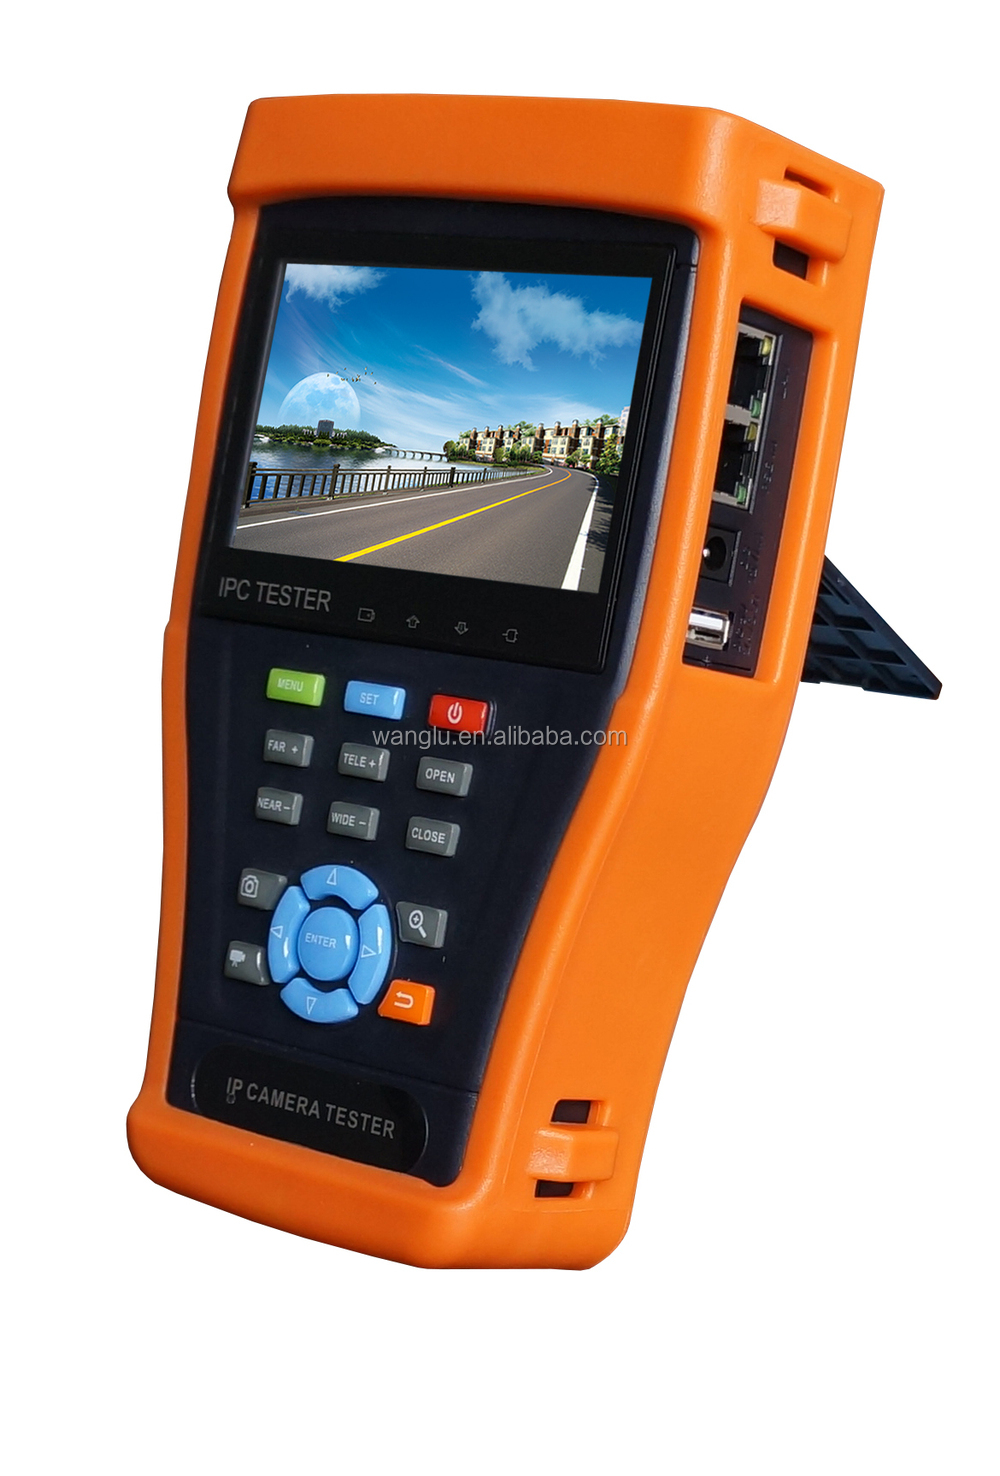 4.3 -inch touchscreen IP camera tester, great CCTV tools for IP camera installation and maintenance